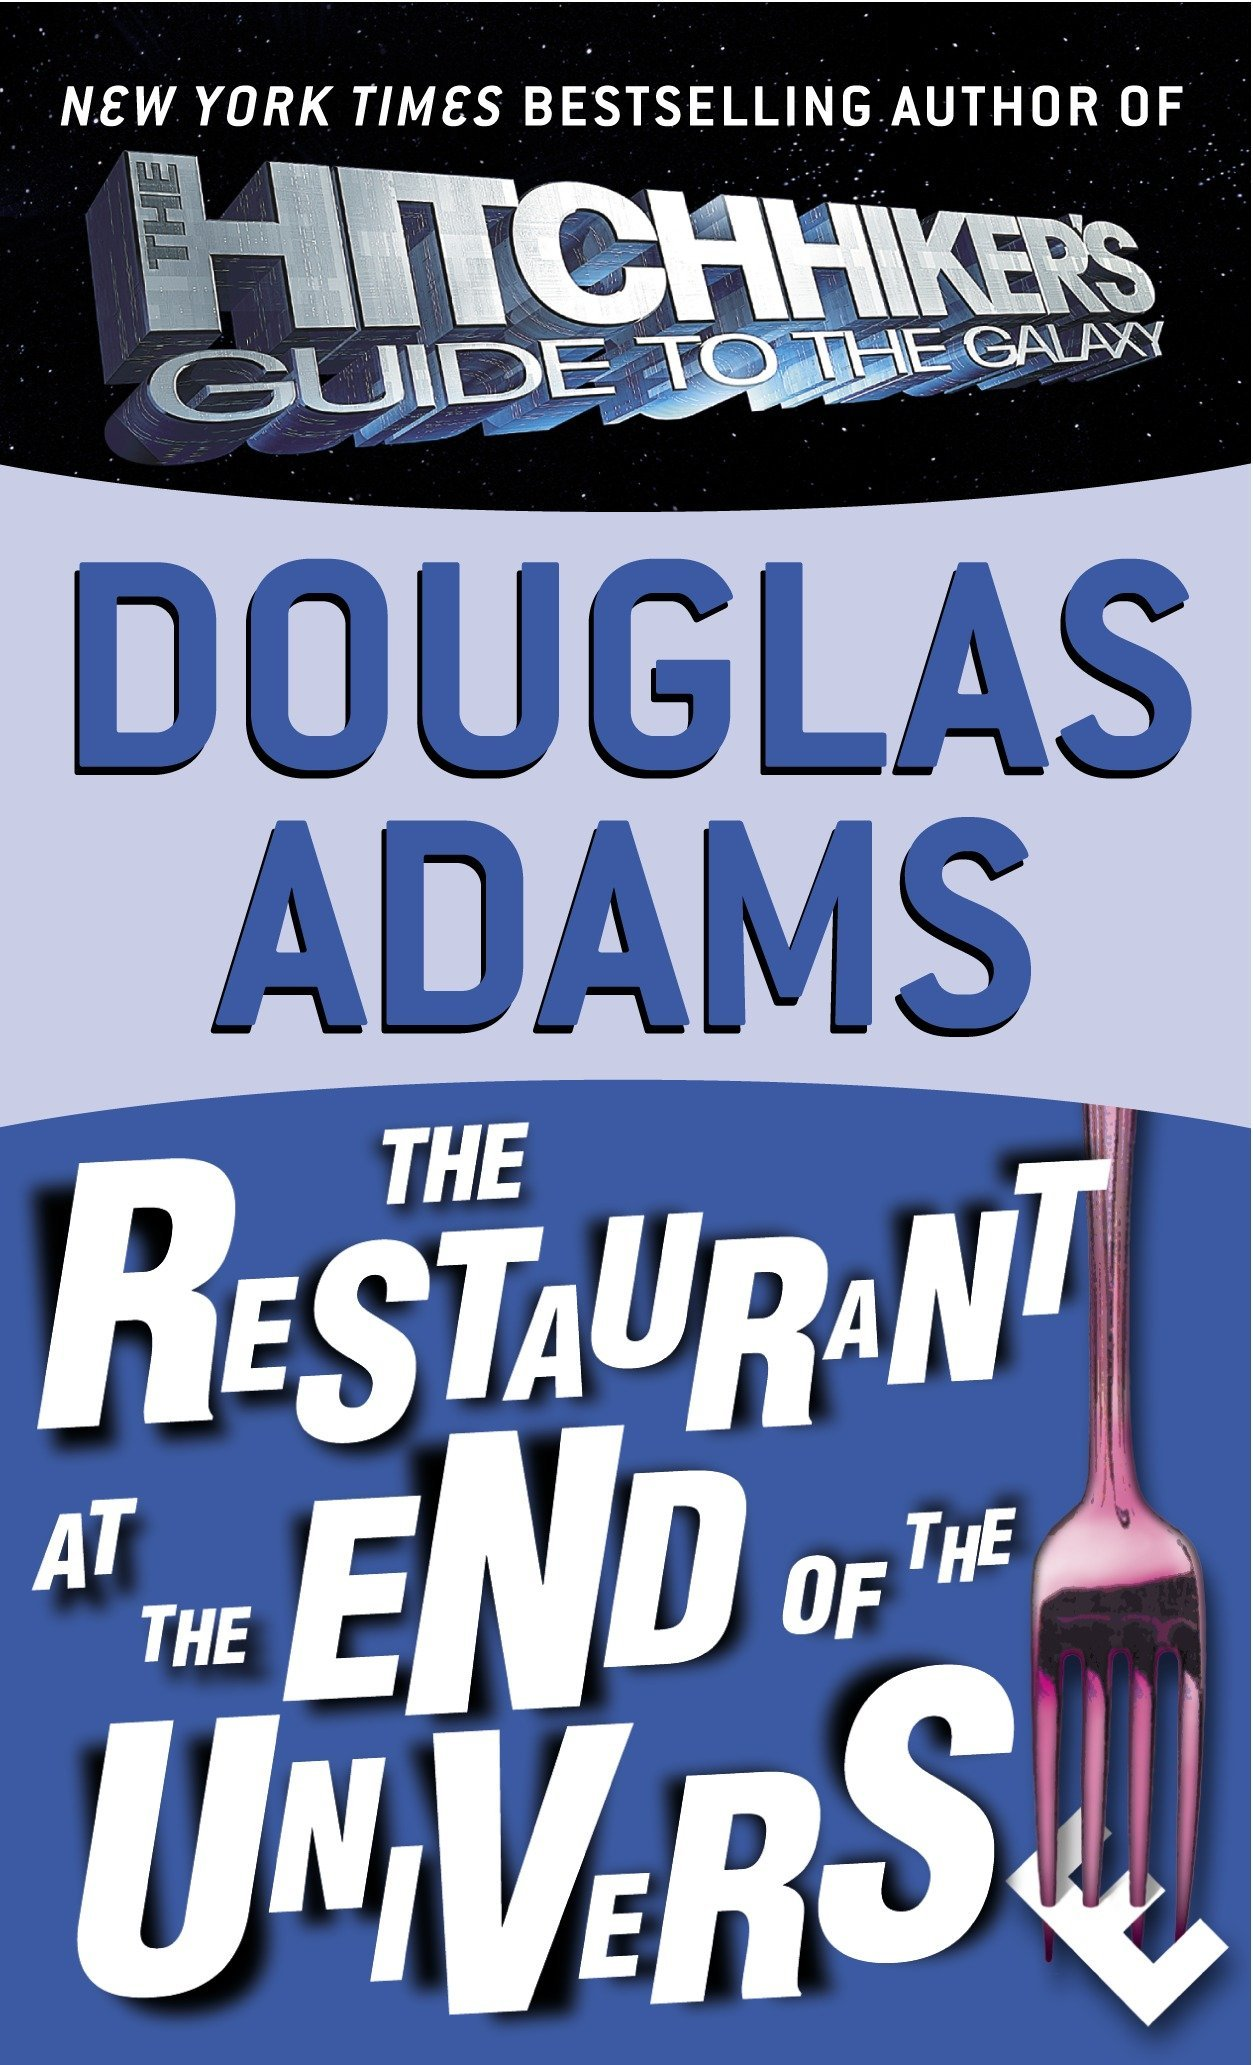 The Restaurant At The End Of The Universe Hitchhikers Guide To The